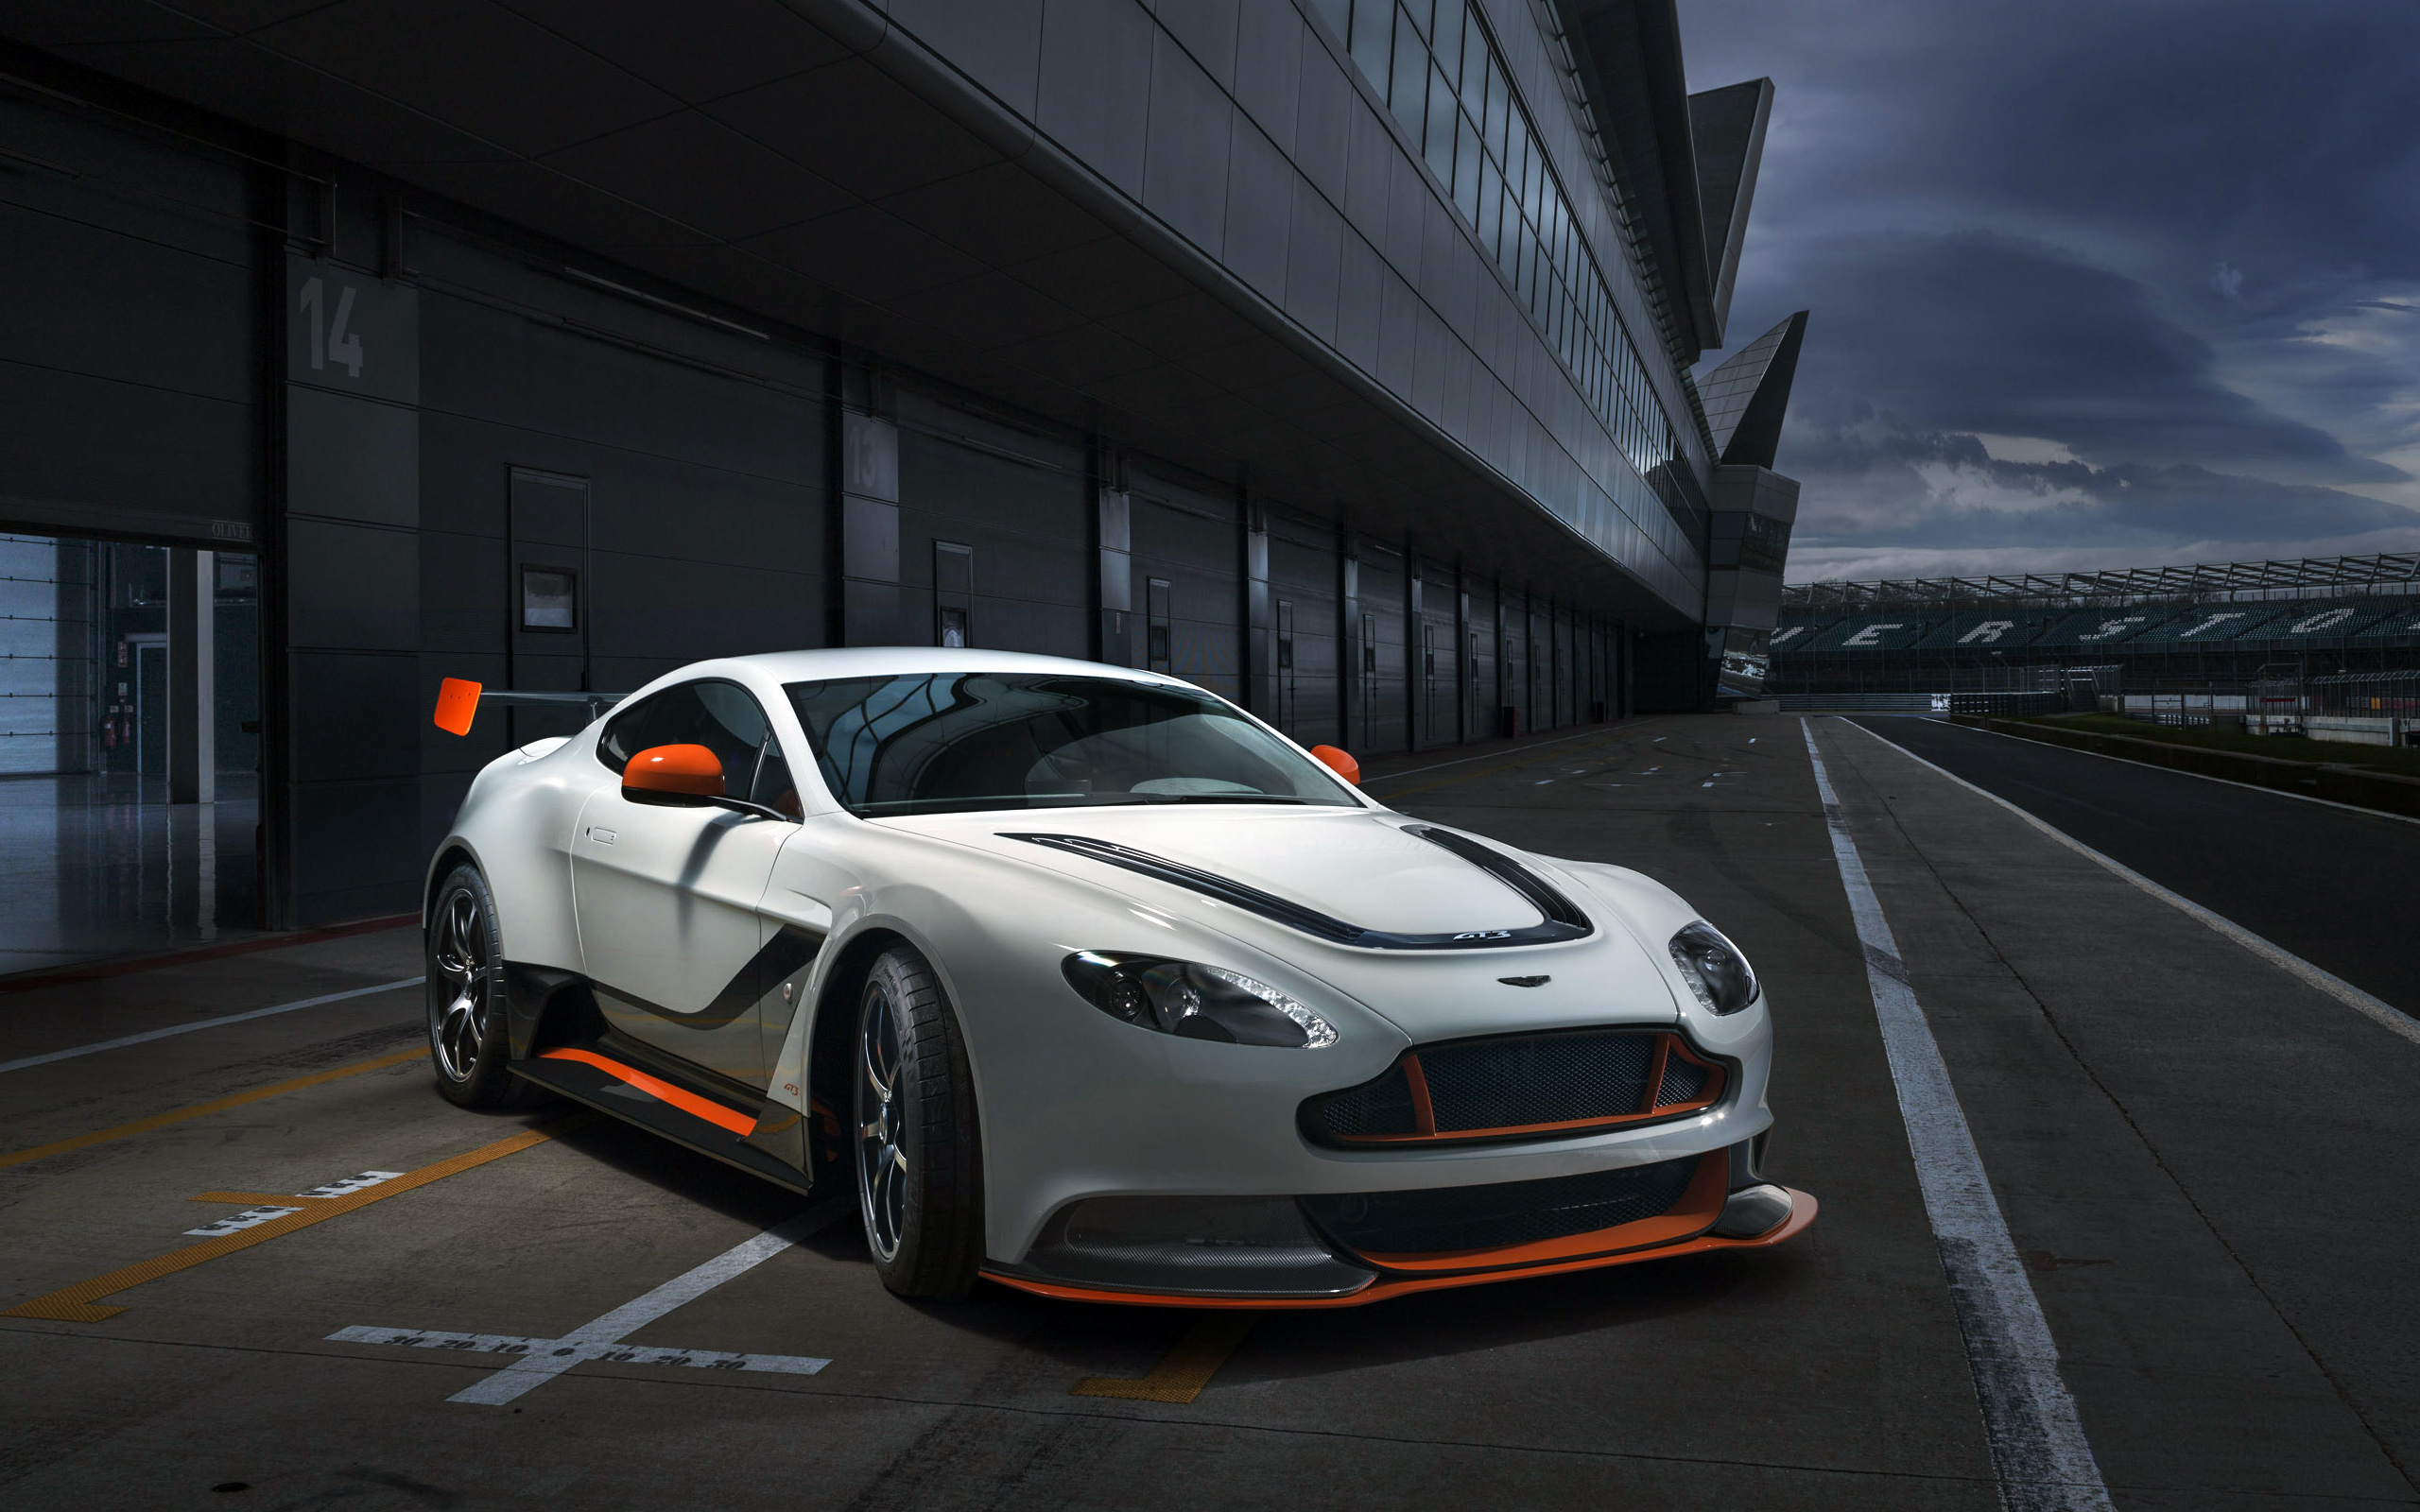 aston martin vantage gt3 full hd wallpaper and background image